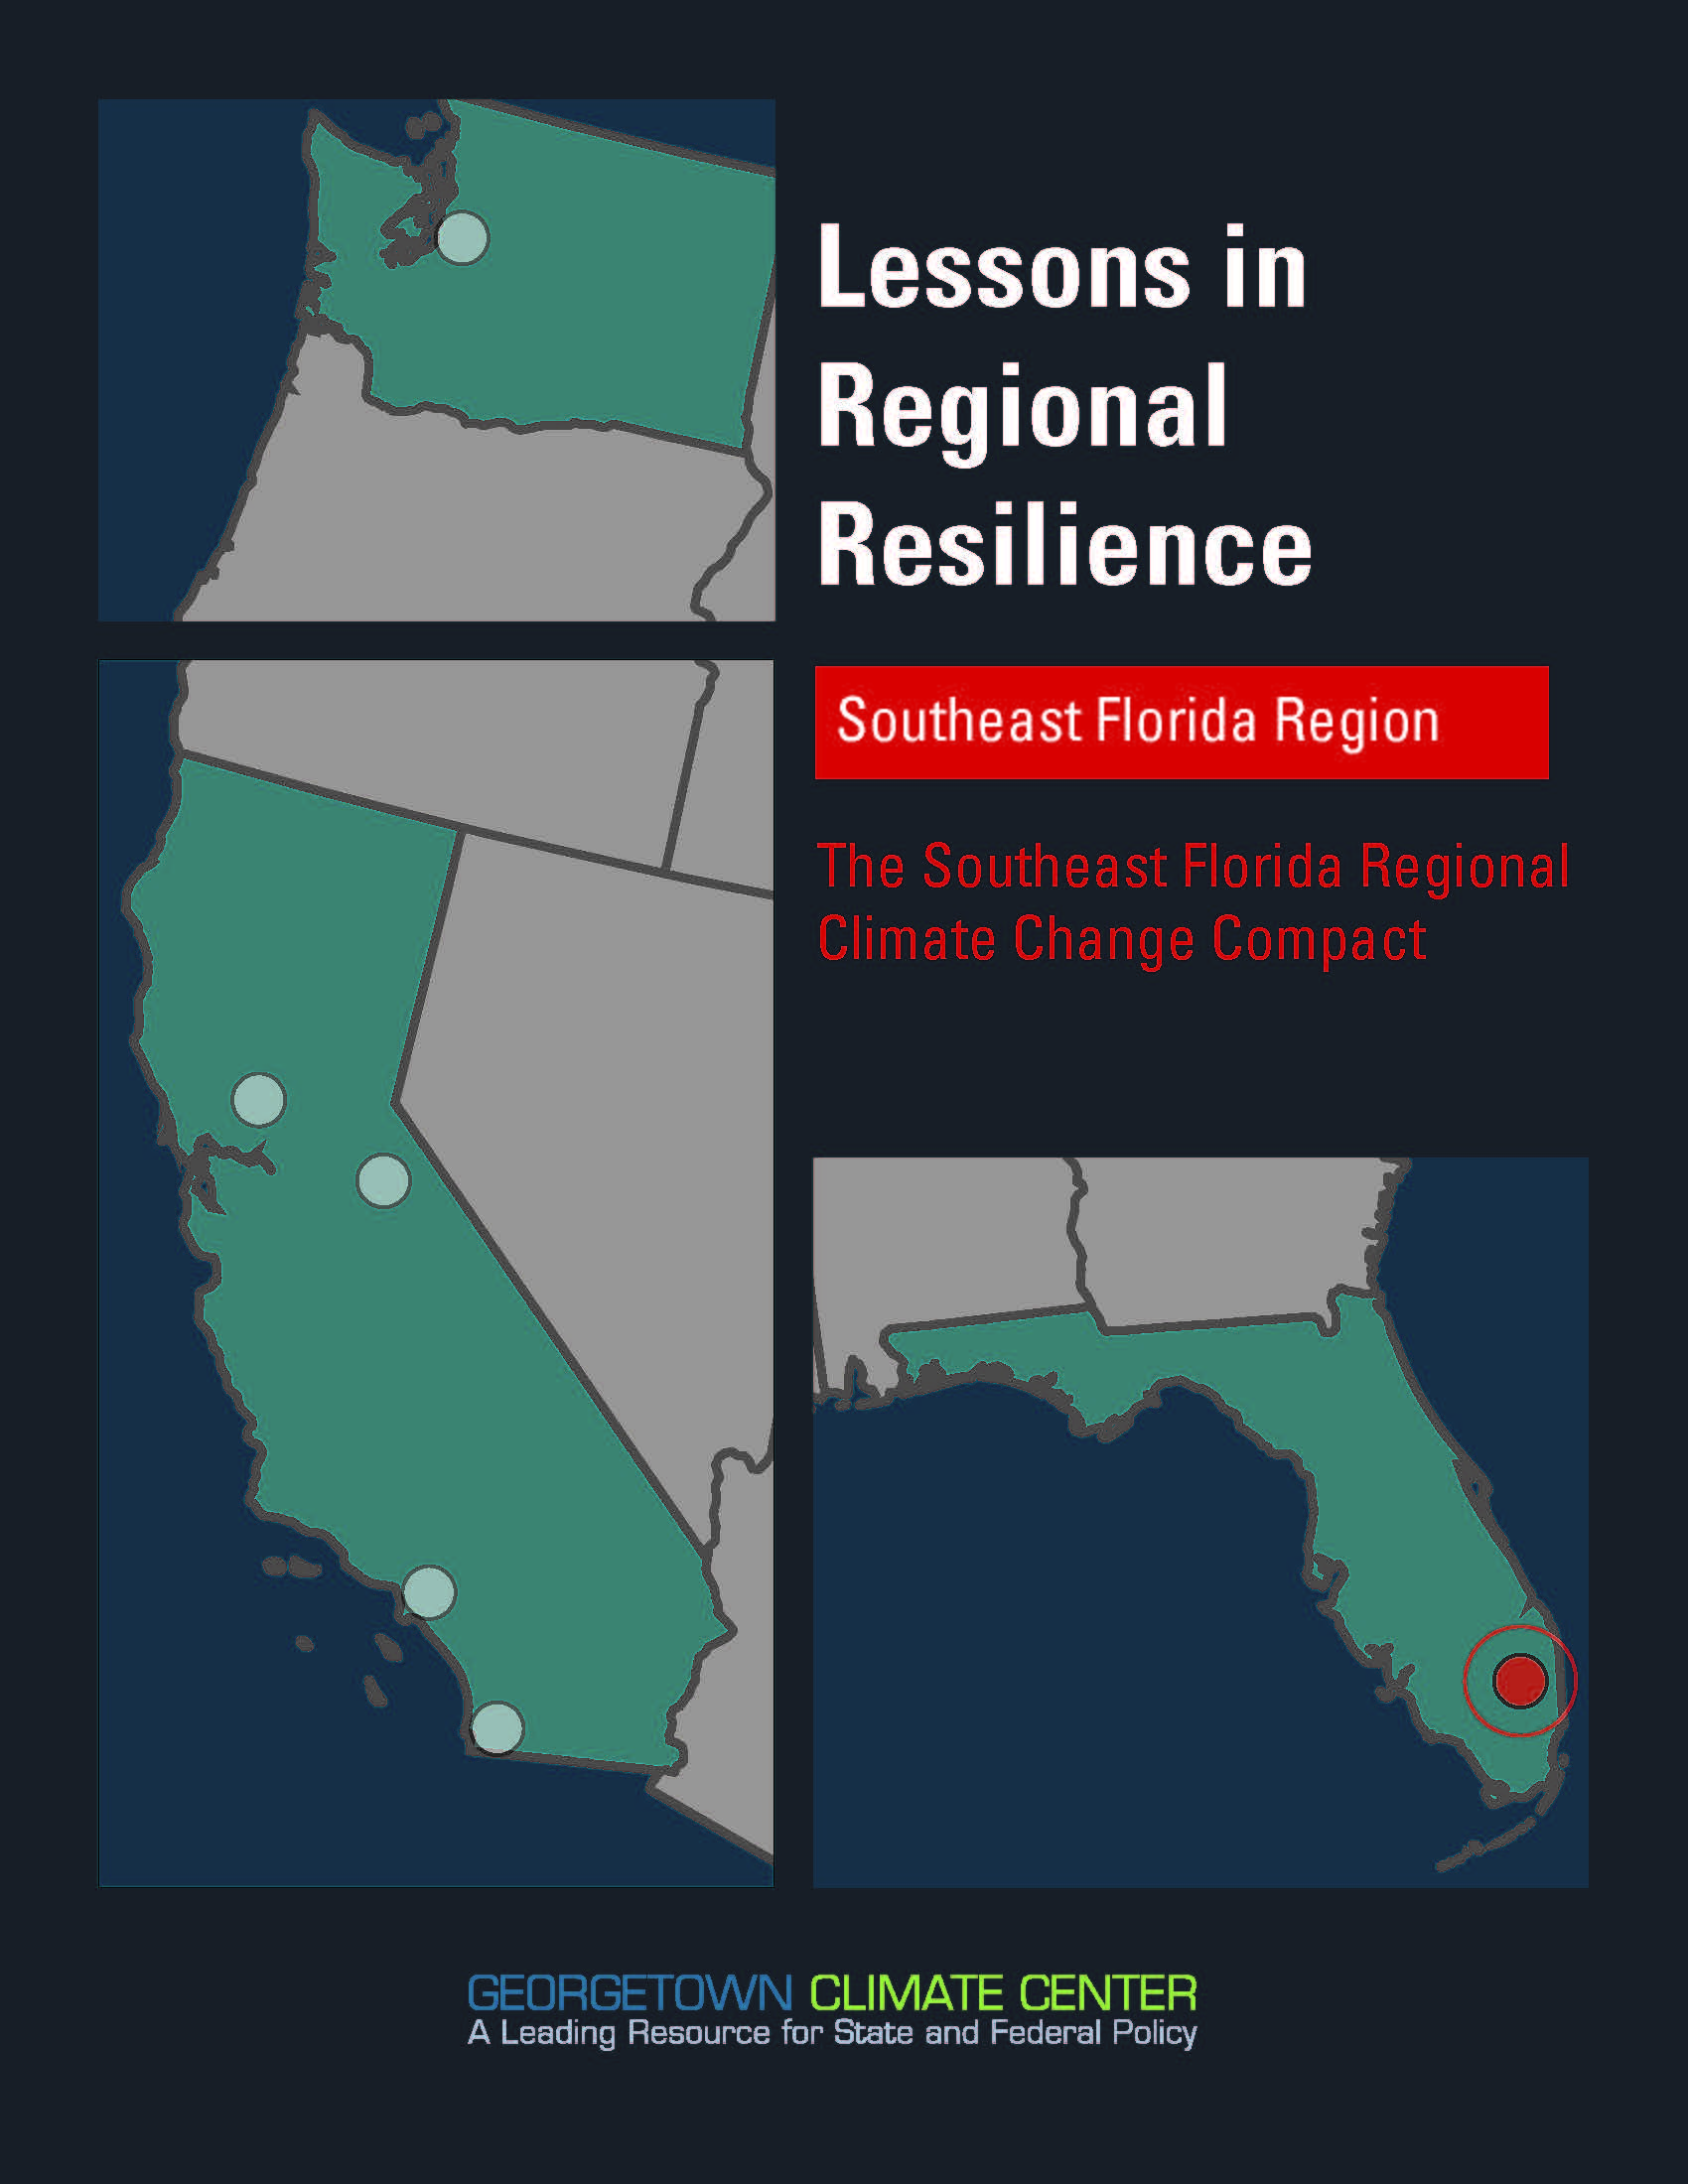 Lessons in Regional Resilience: The Southeast Florida Regional Climate Change Compact